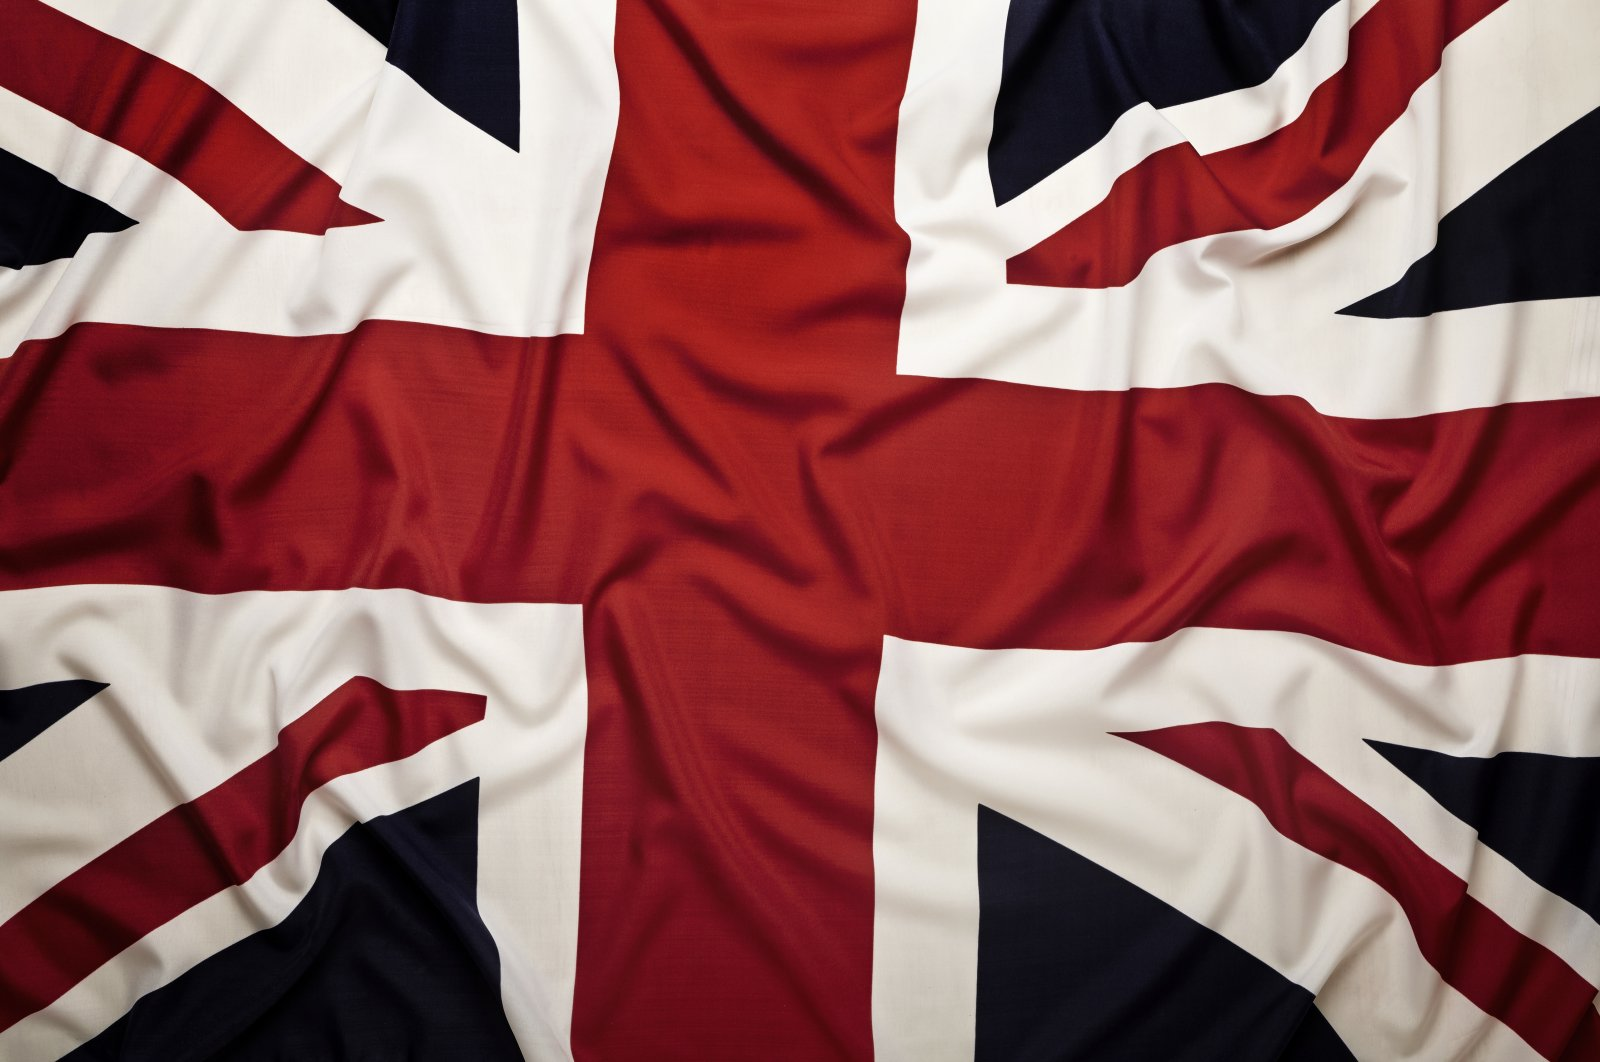 The flag of the United Kingdom. (Photo by Getty Images)